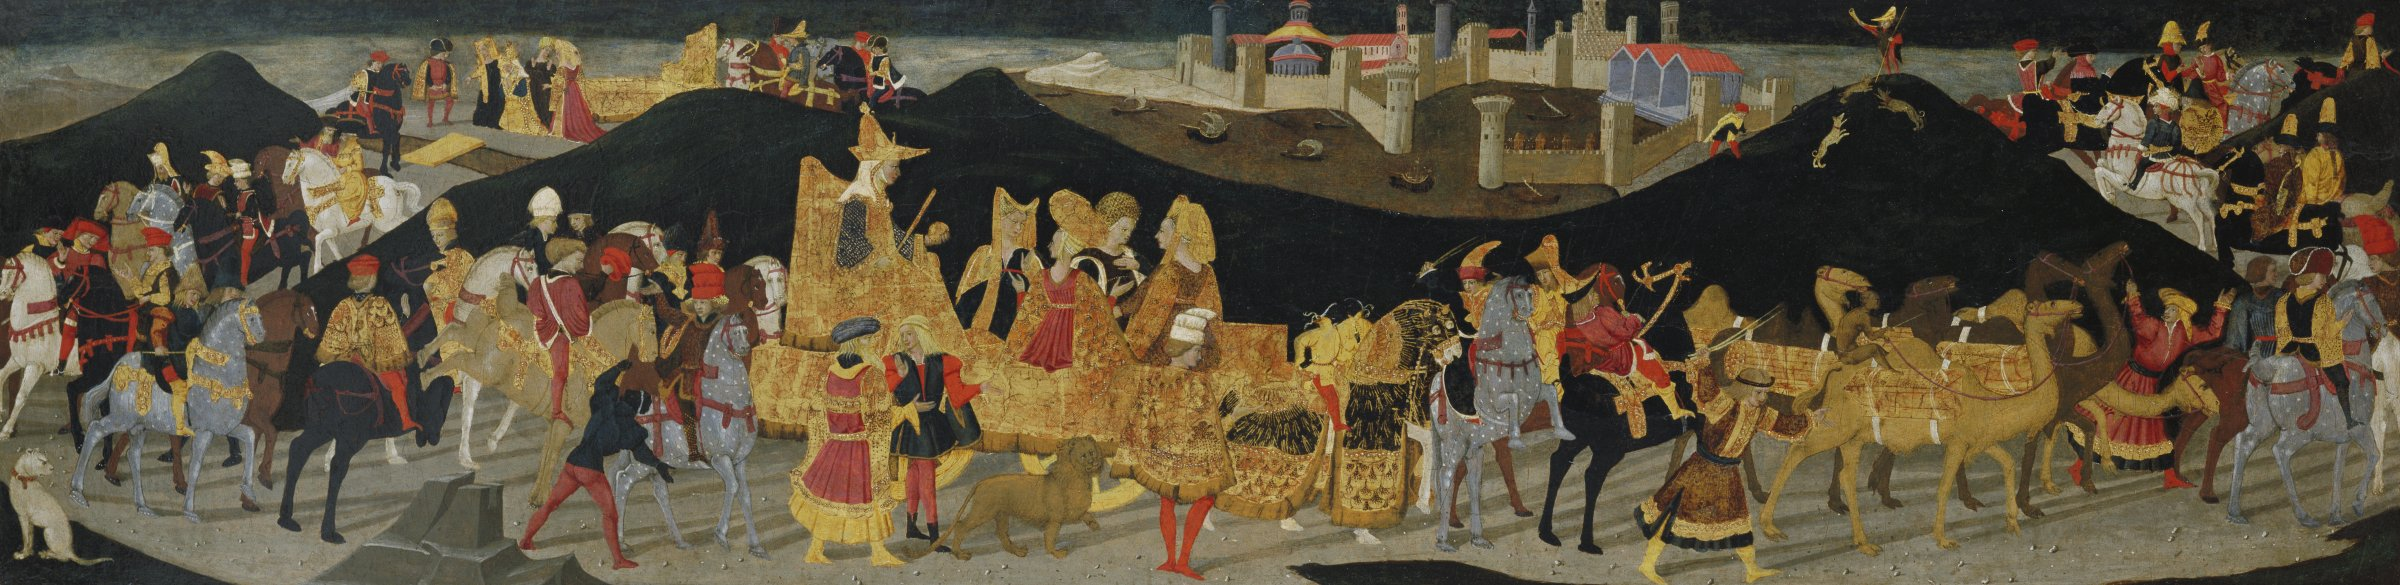 In the narrow horizontal scene, a large procession of knights, horses, and camels move from left to right through the landscape accompanying the Queen of Sheba who is being carried on an elaborate palaquin.